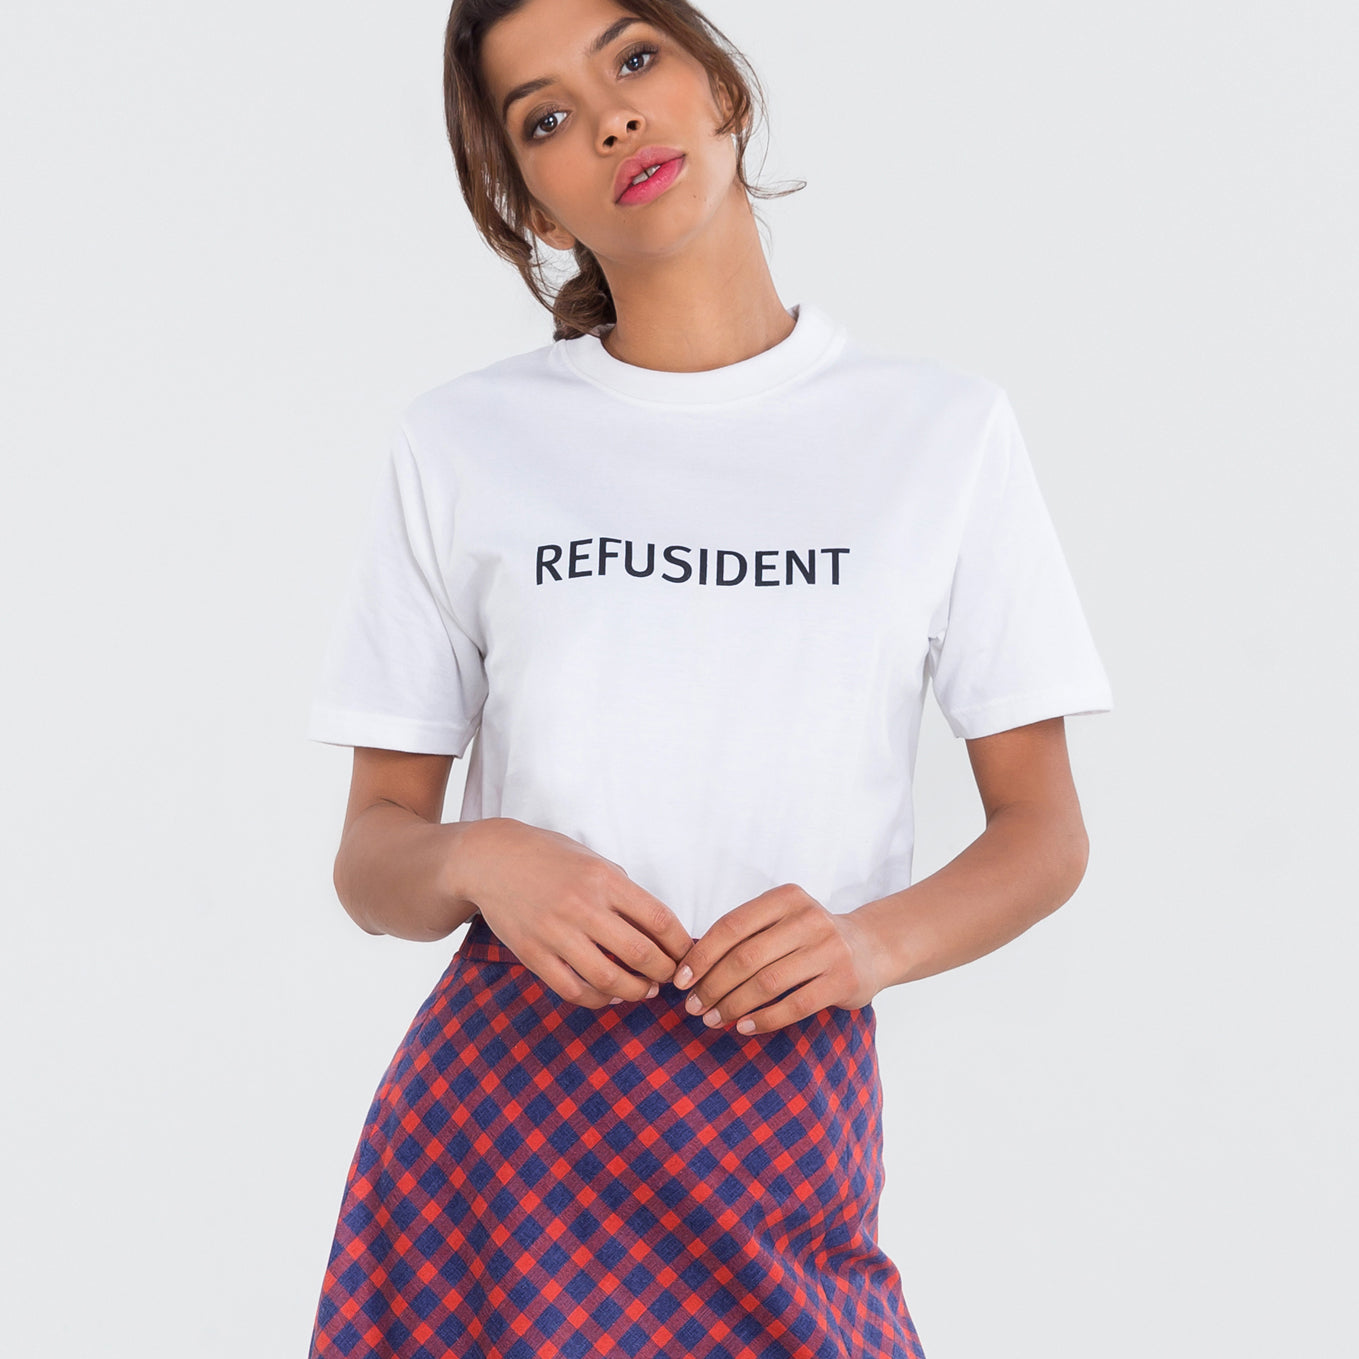 Refusident T.shirt